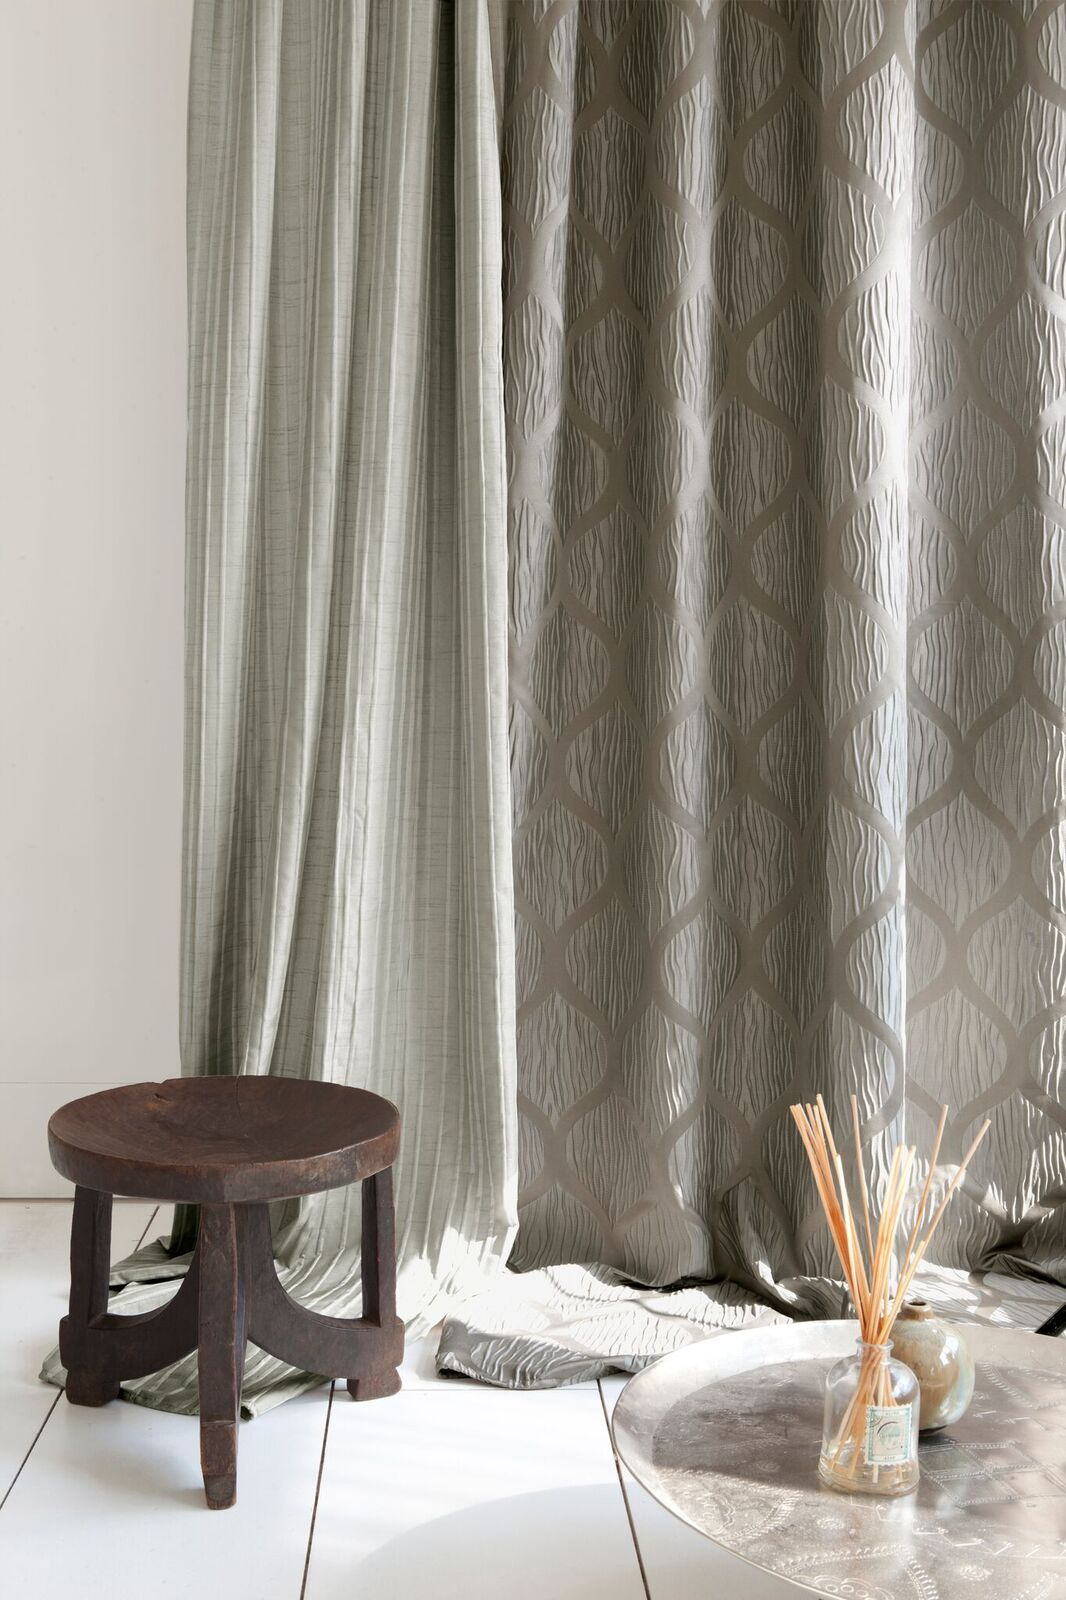 Wooden stall by curtains